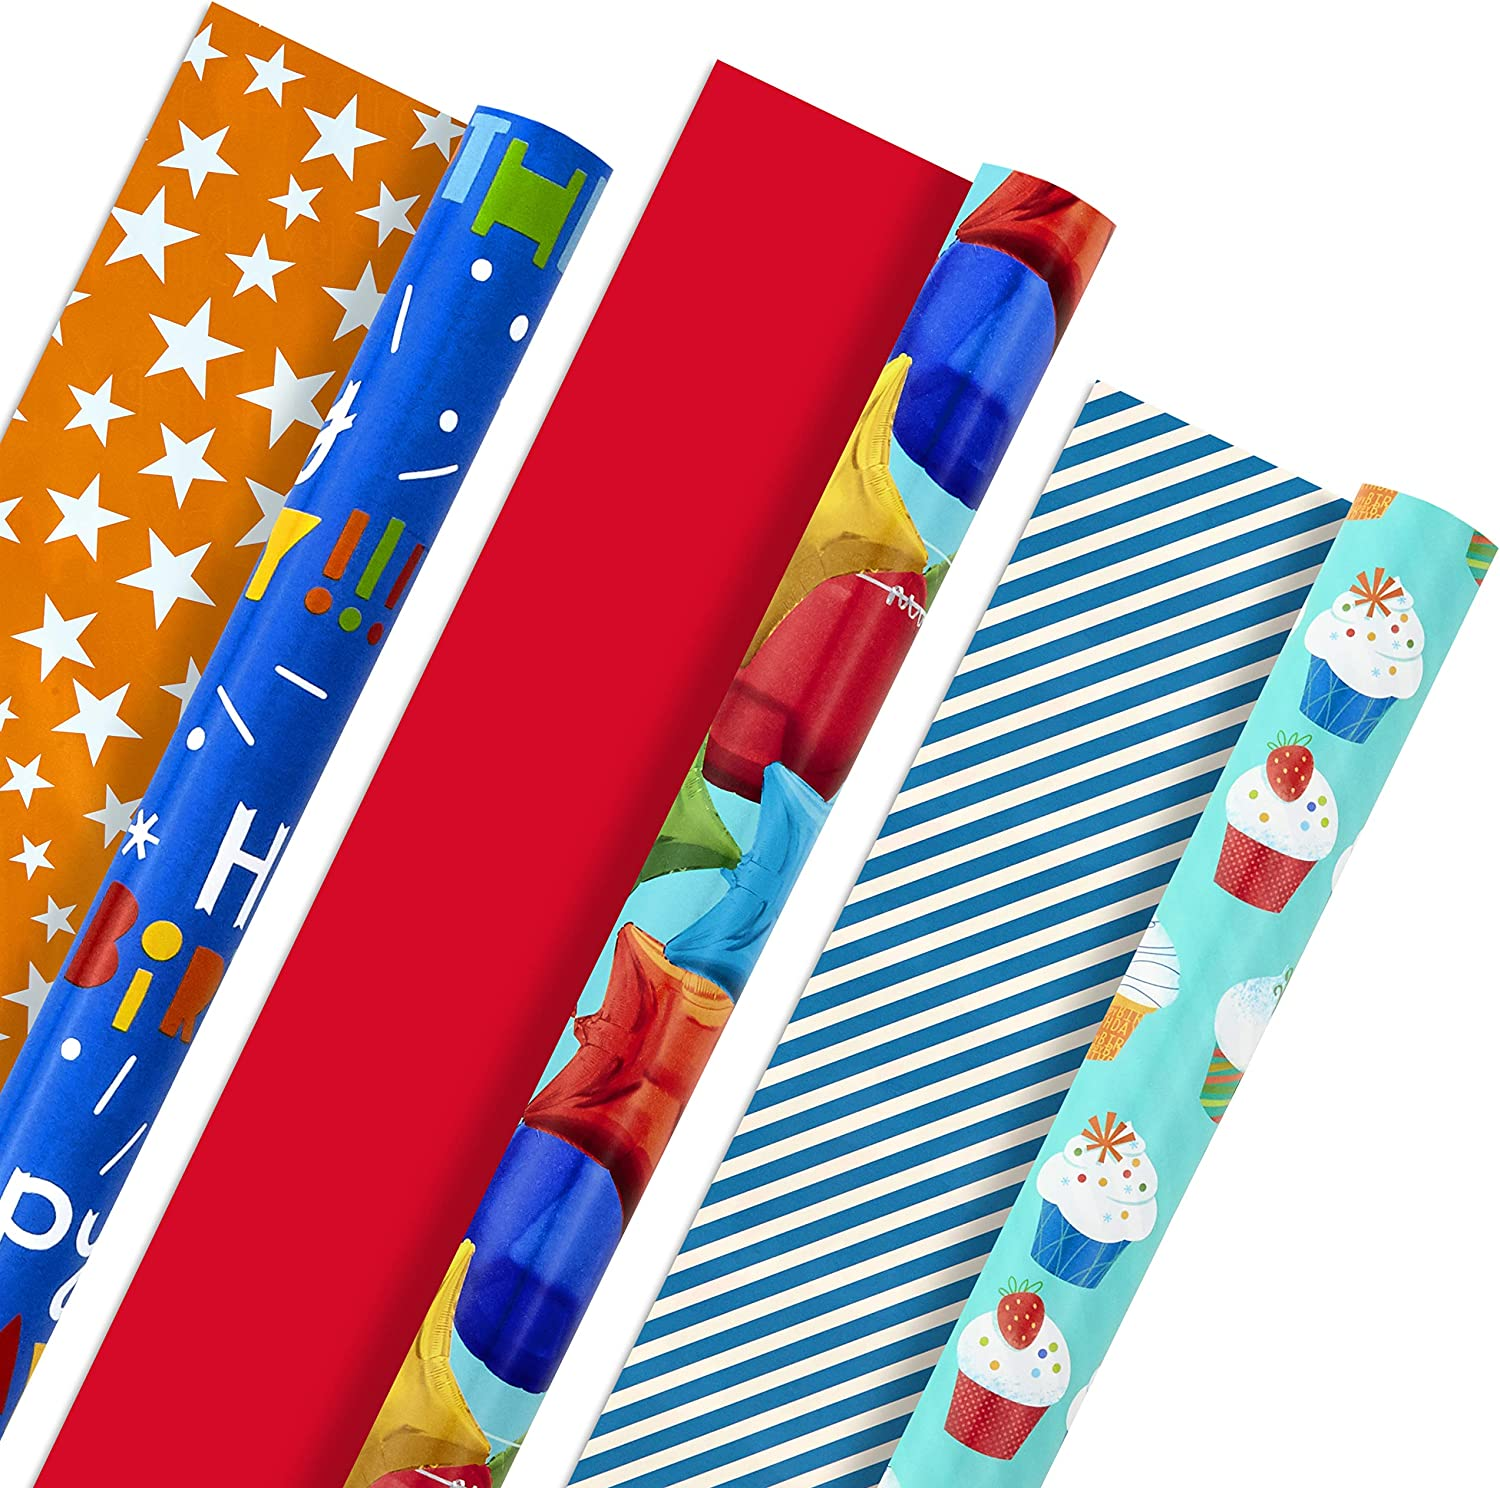 Hallmark All Occasion Reversible Wrapping Paper Bundle - Kids Birthday (3 Rolls - 75 sq. ft. ttl) Balloons, Stars, Cupcakes, Blue Stripes, Solid Red: Kitchen & Dining